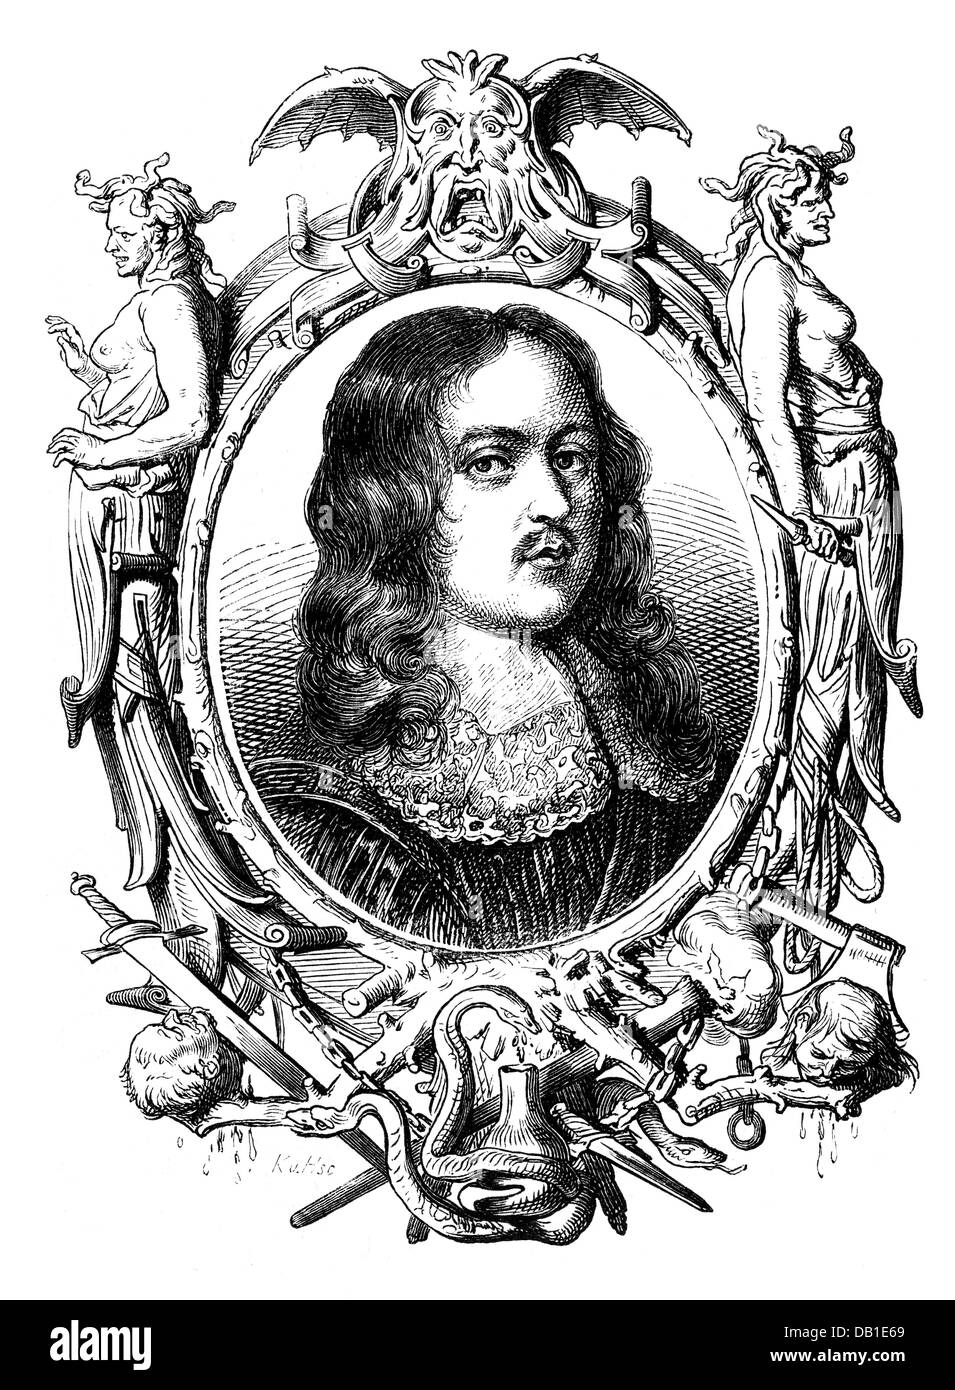 Hales, Edward, 1576 - 1654, English politician, Member of the Long Parliament 1640 - 1645, portrait, wood engraving, - Stock Image